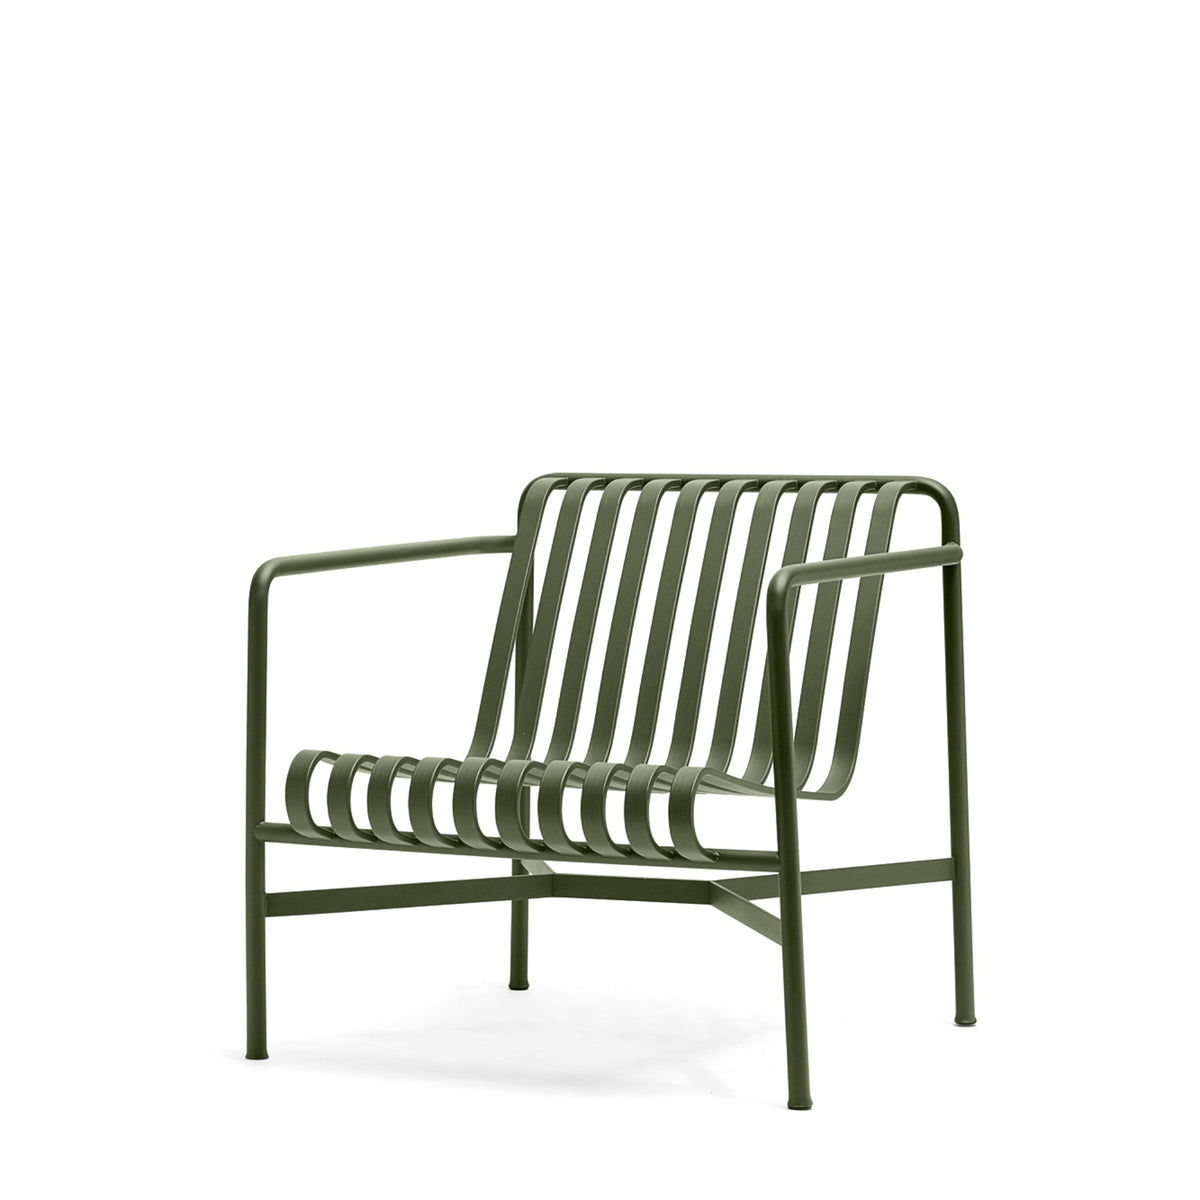 HAY Palissade Lounge Chair Low Office Olive Green